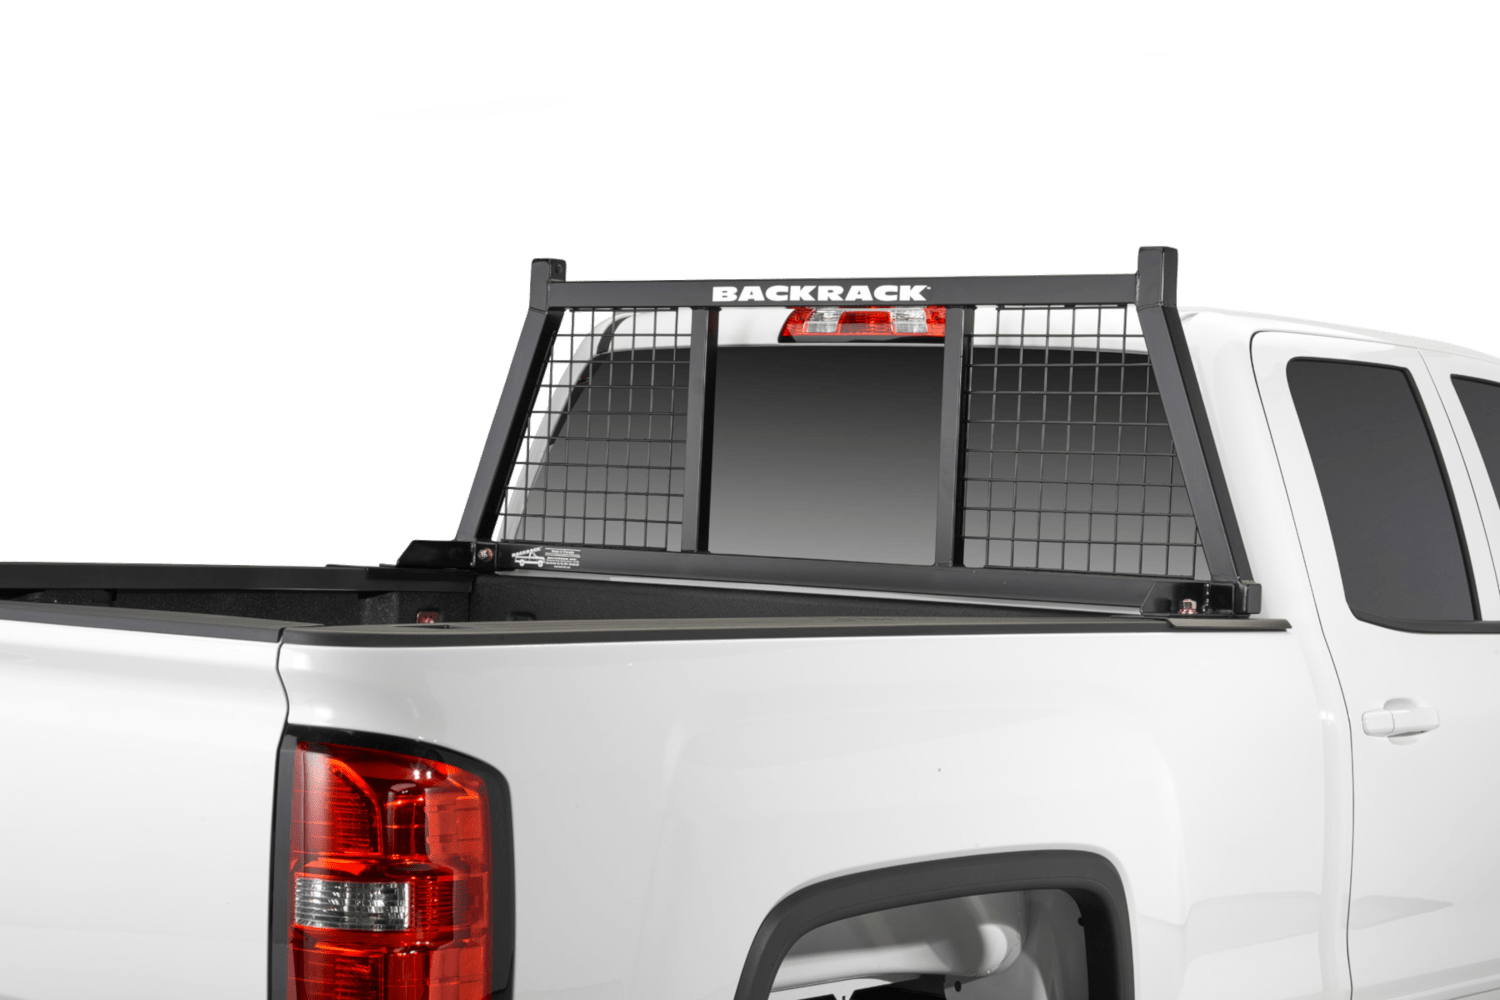 The Half Safety Rack provides strength and functionality while also providing protection for the driver and passenger in the cab.